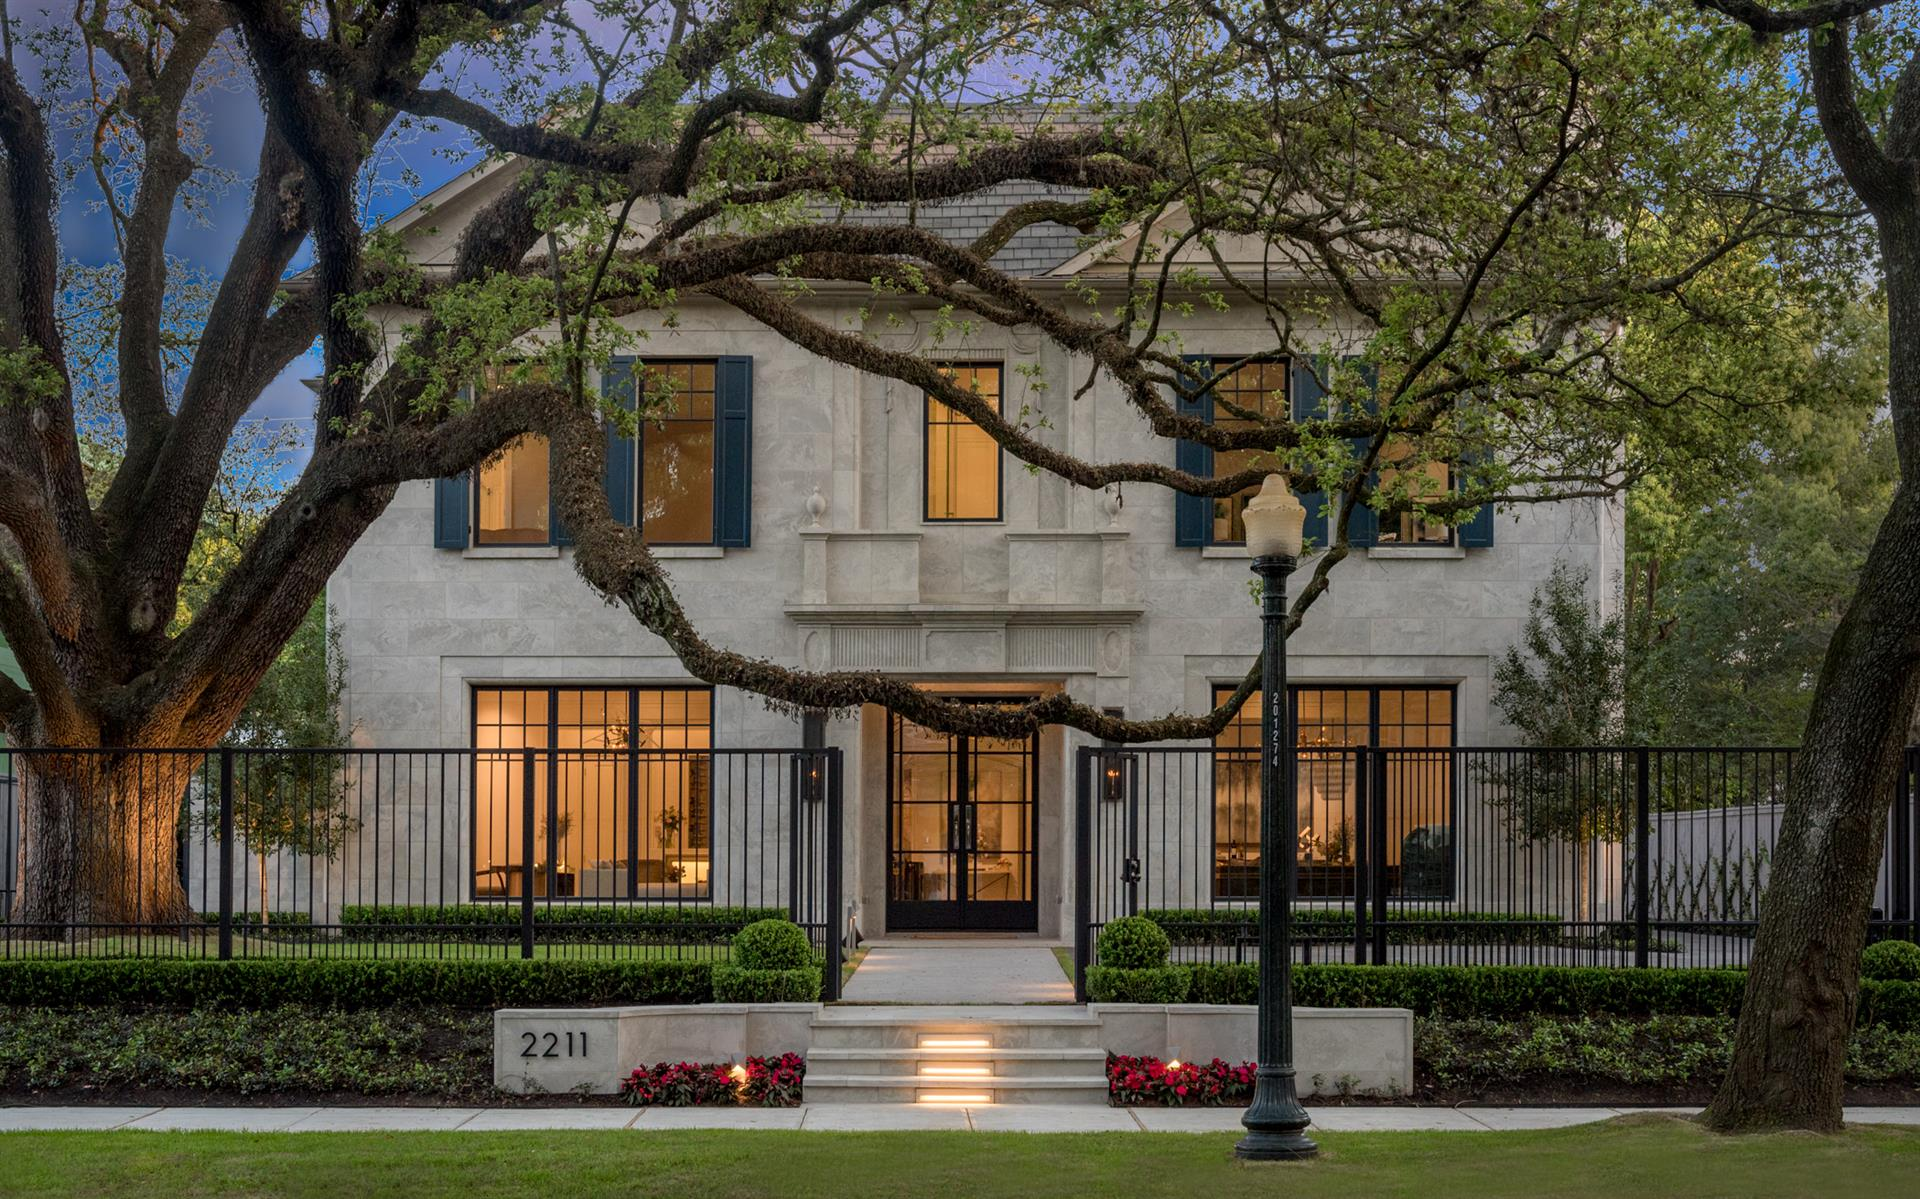 Texas Real Estate And Apartments For Sale Christie S